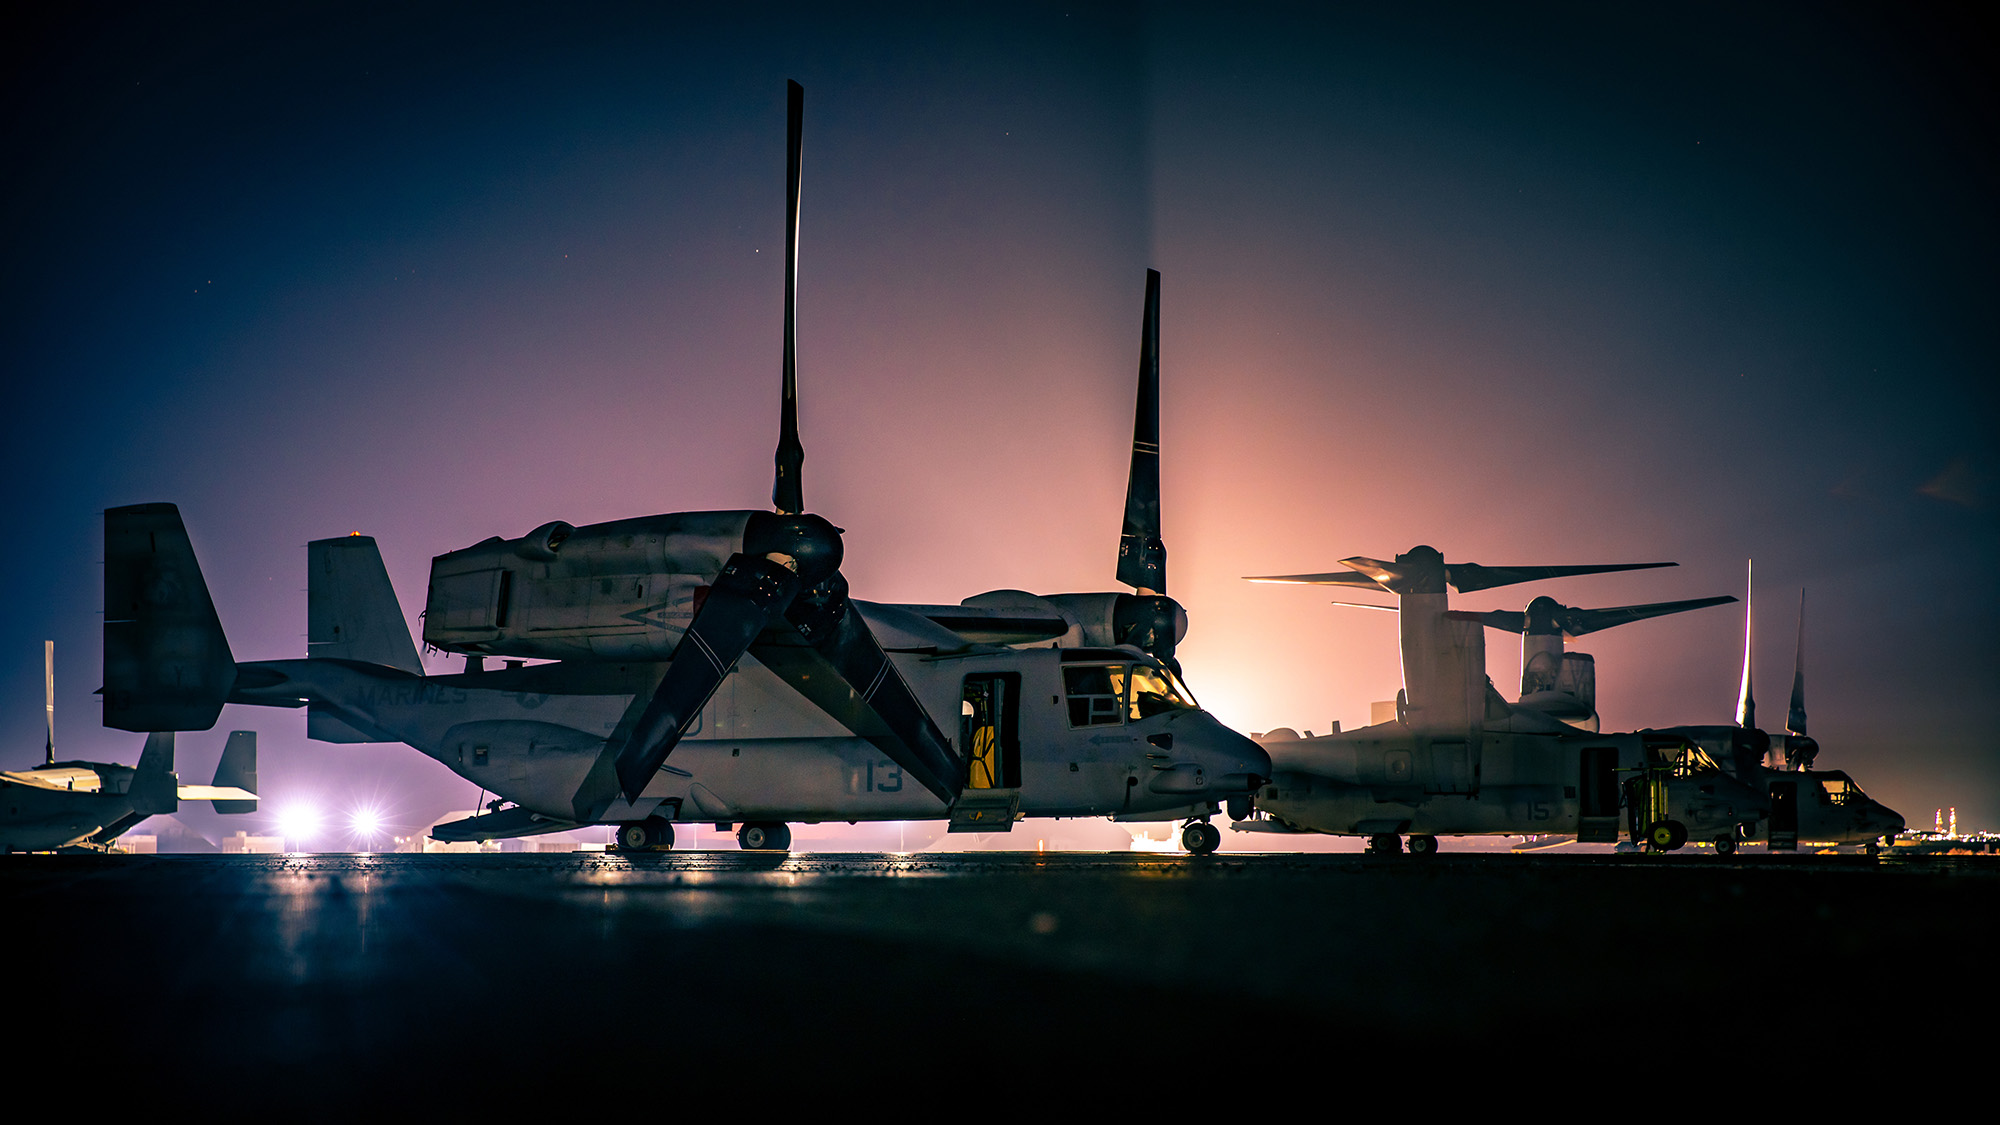 Marine Corps MV-22 Ospreys assigned to Marine Medium Tiltrotor Squadron 166, Special Purpose Marine Air-Ground Task Force Crisis Response - Central Command, are staged on the flight line in Kuwait, Sept 24, 2020. (Lance Cpl. Andrew Skiver/Marine Corps)